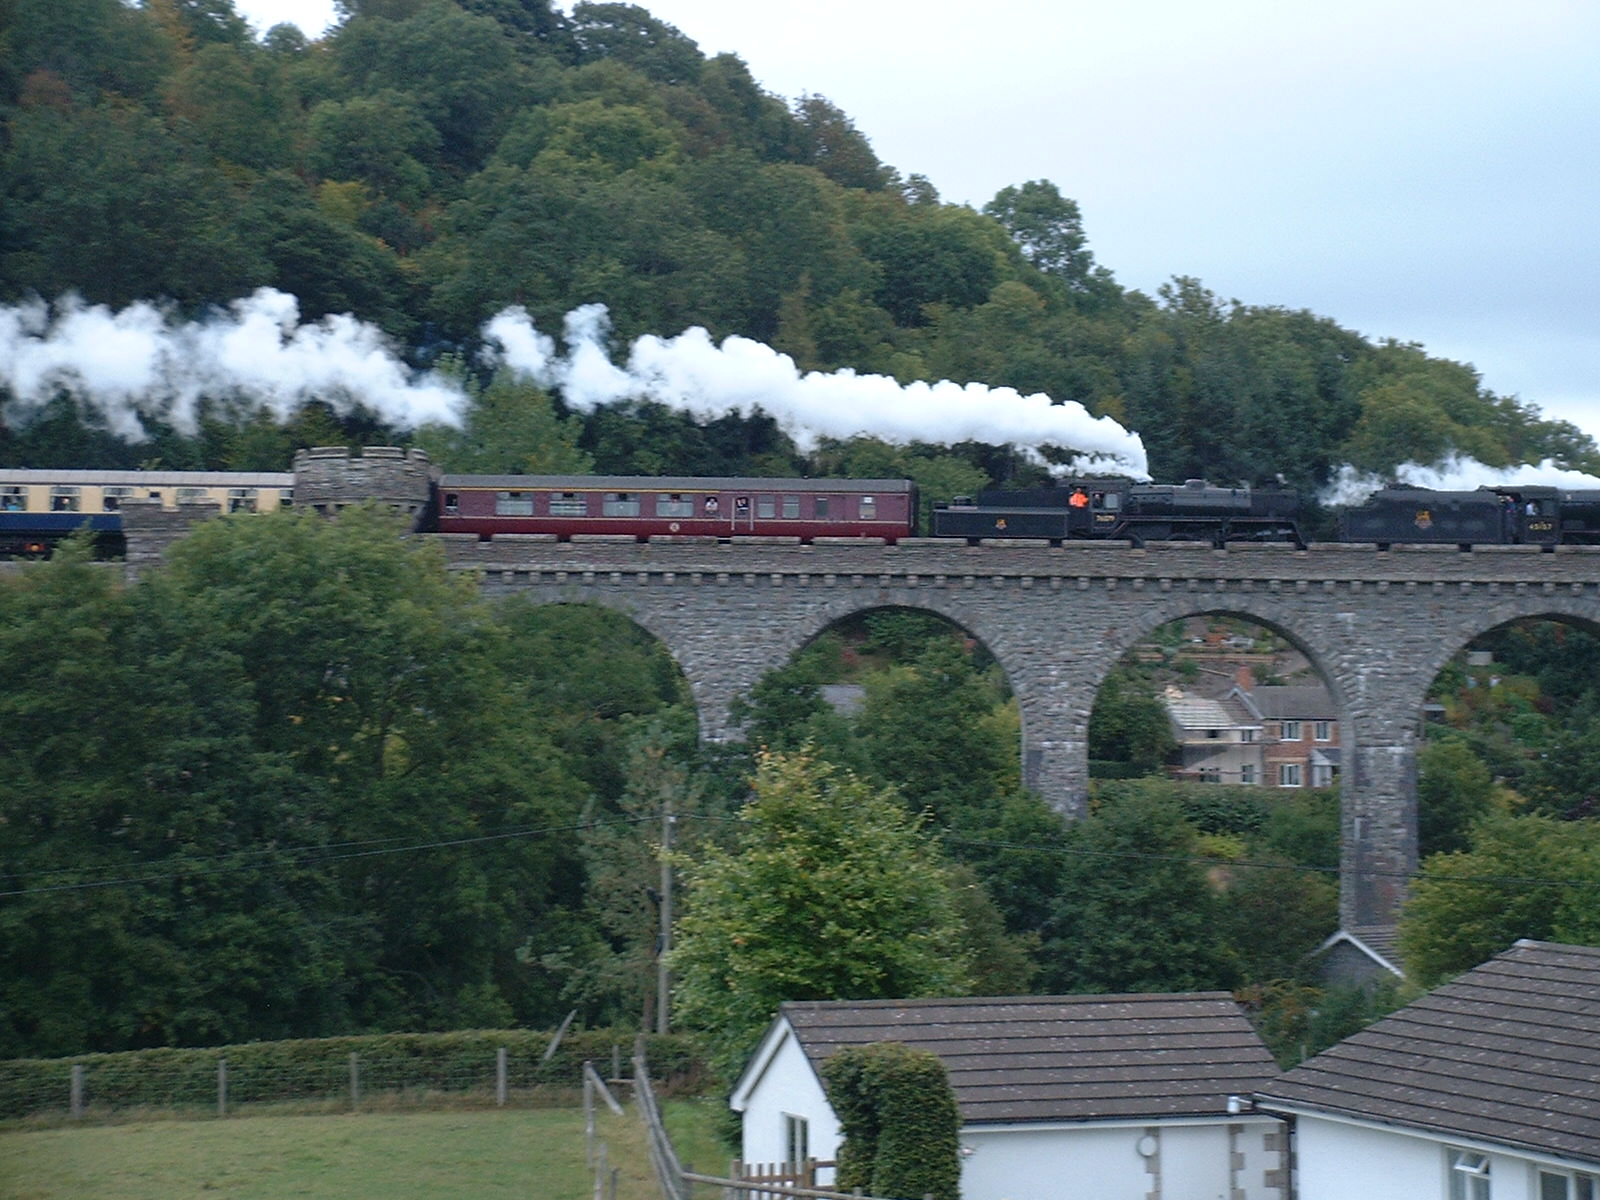 Steam on viaduct